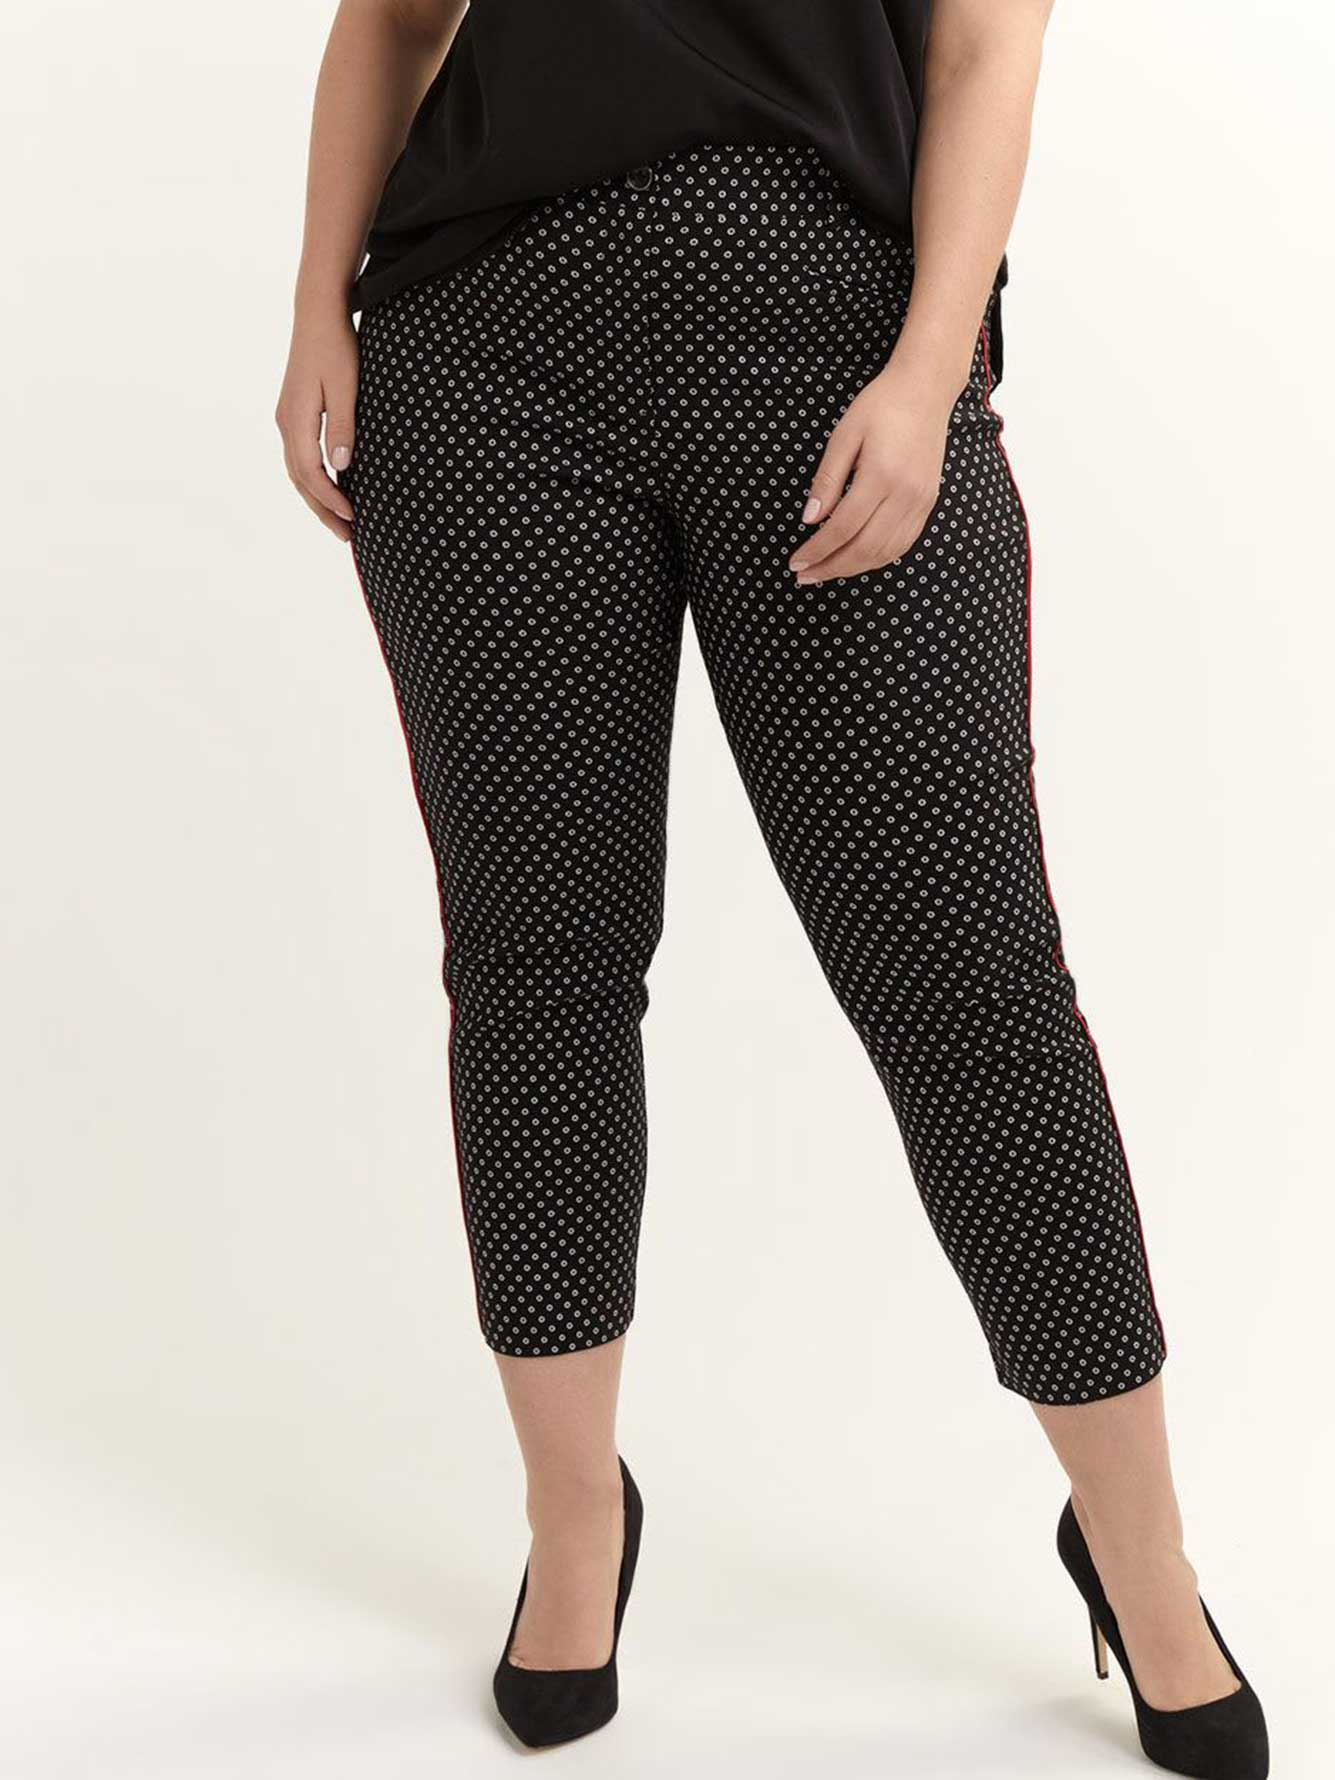 Printed Savvy Chic Ankle Pant - In Every Story